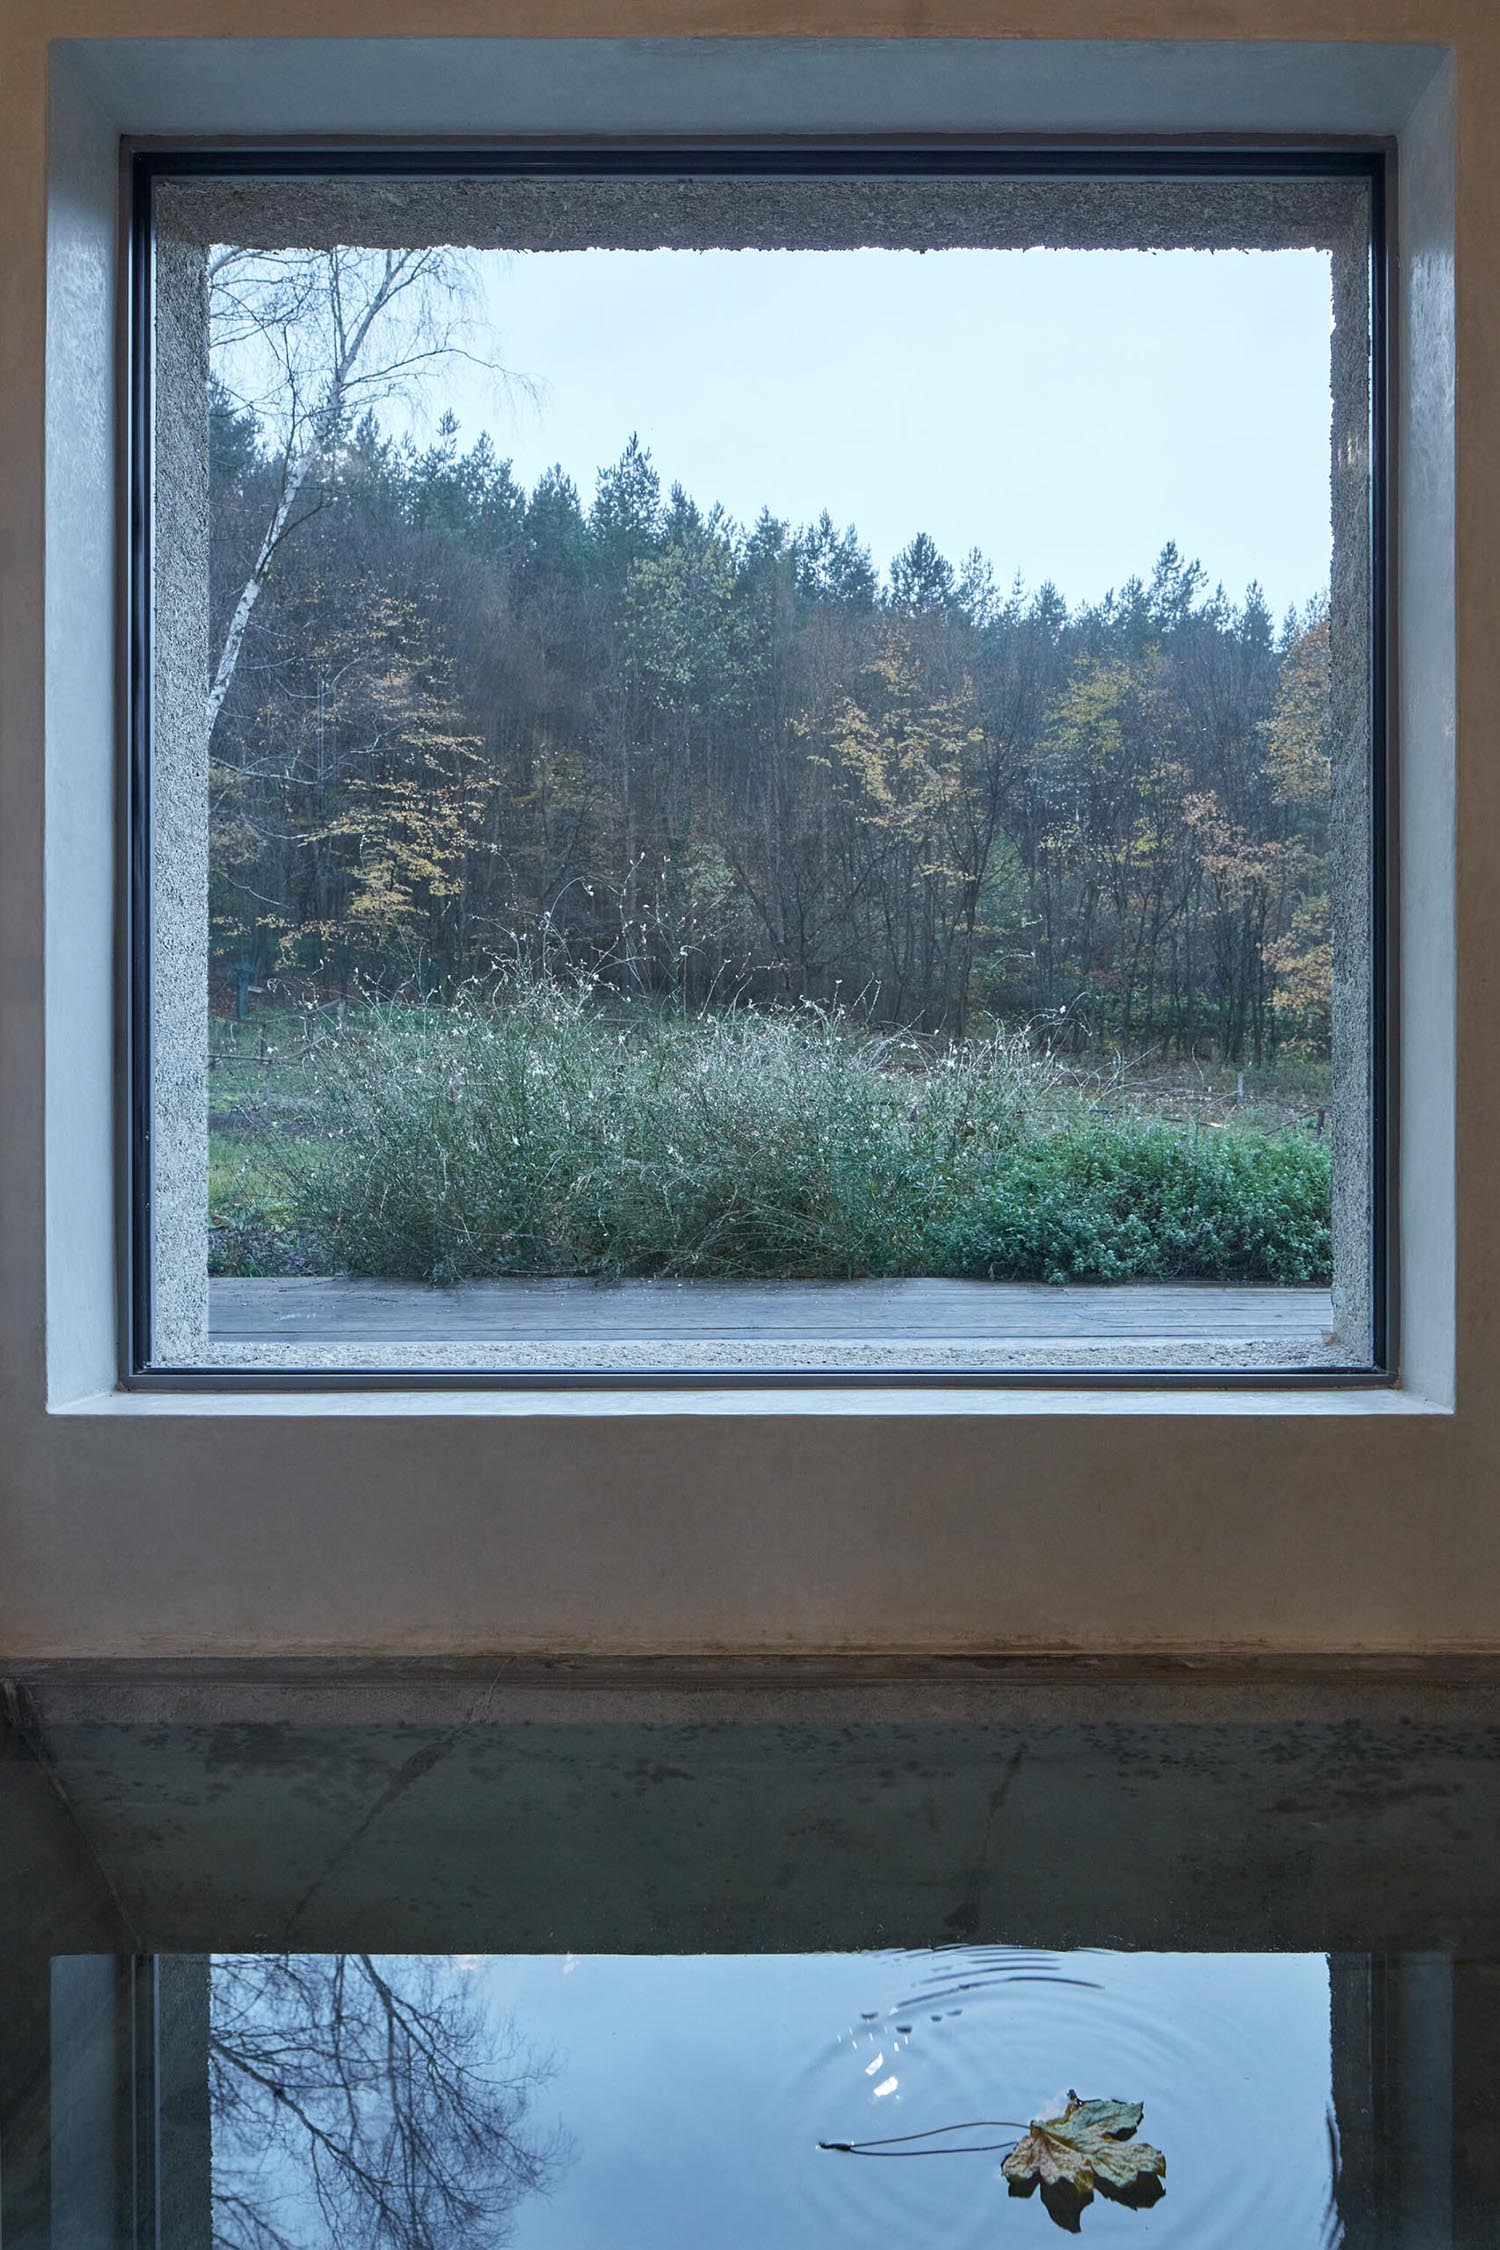 A sunken bathtub lies below a picture window with views of the trees.